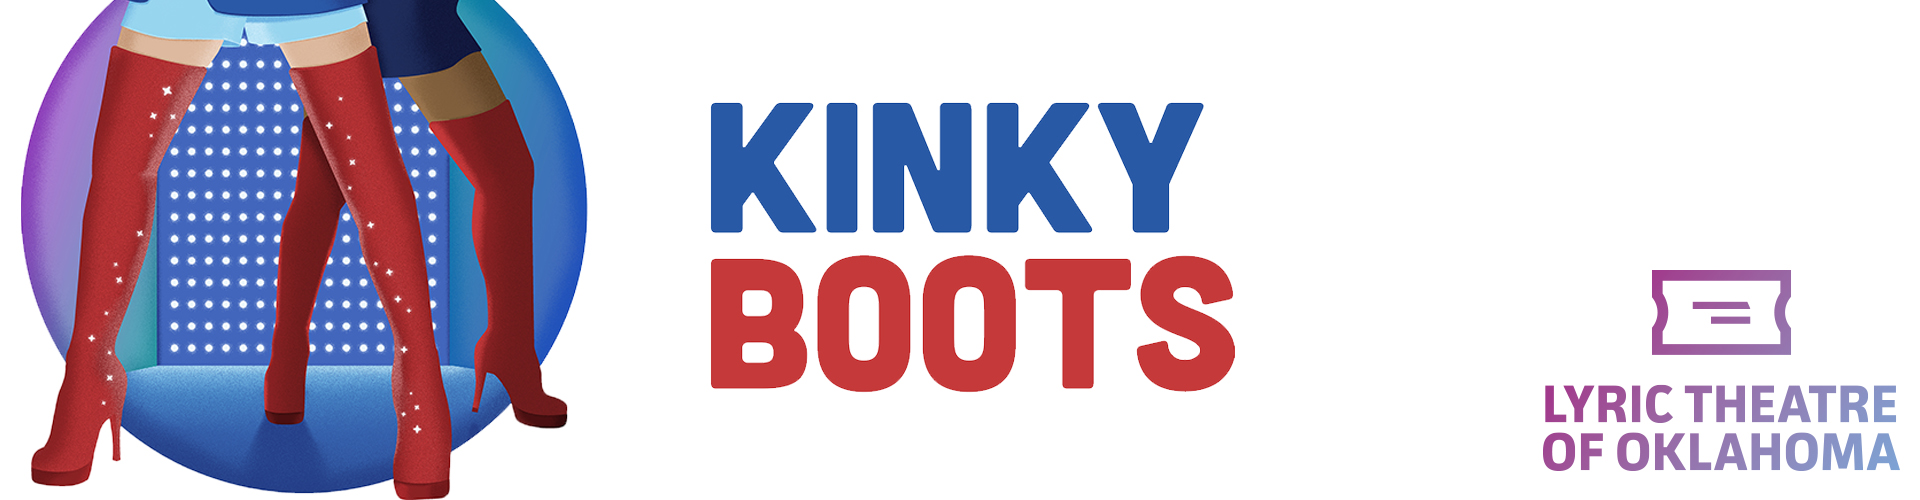 Kinky Boots - Cancelled